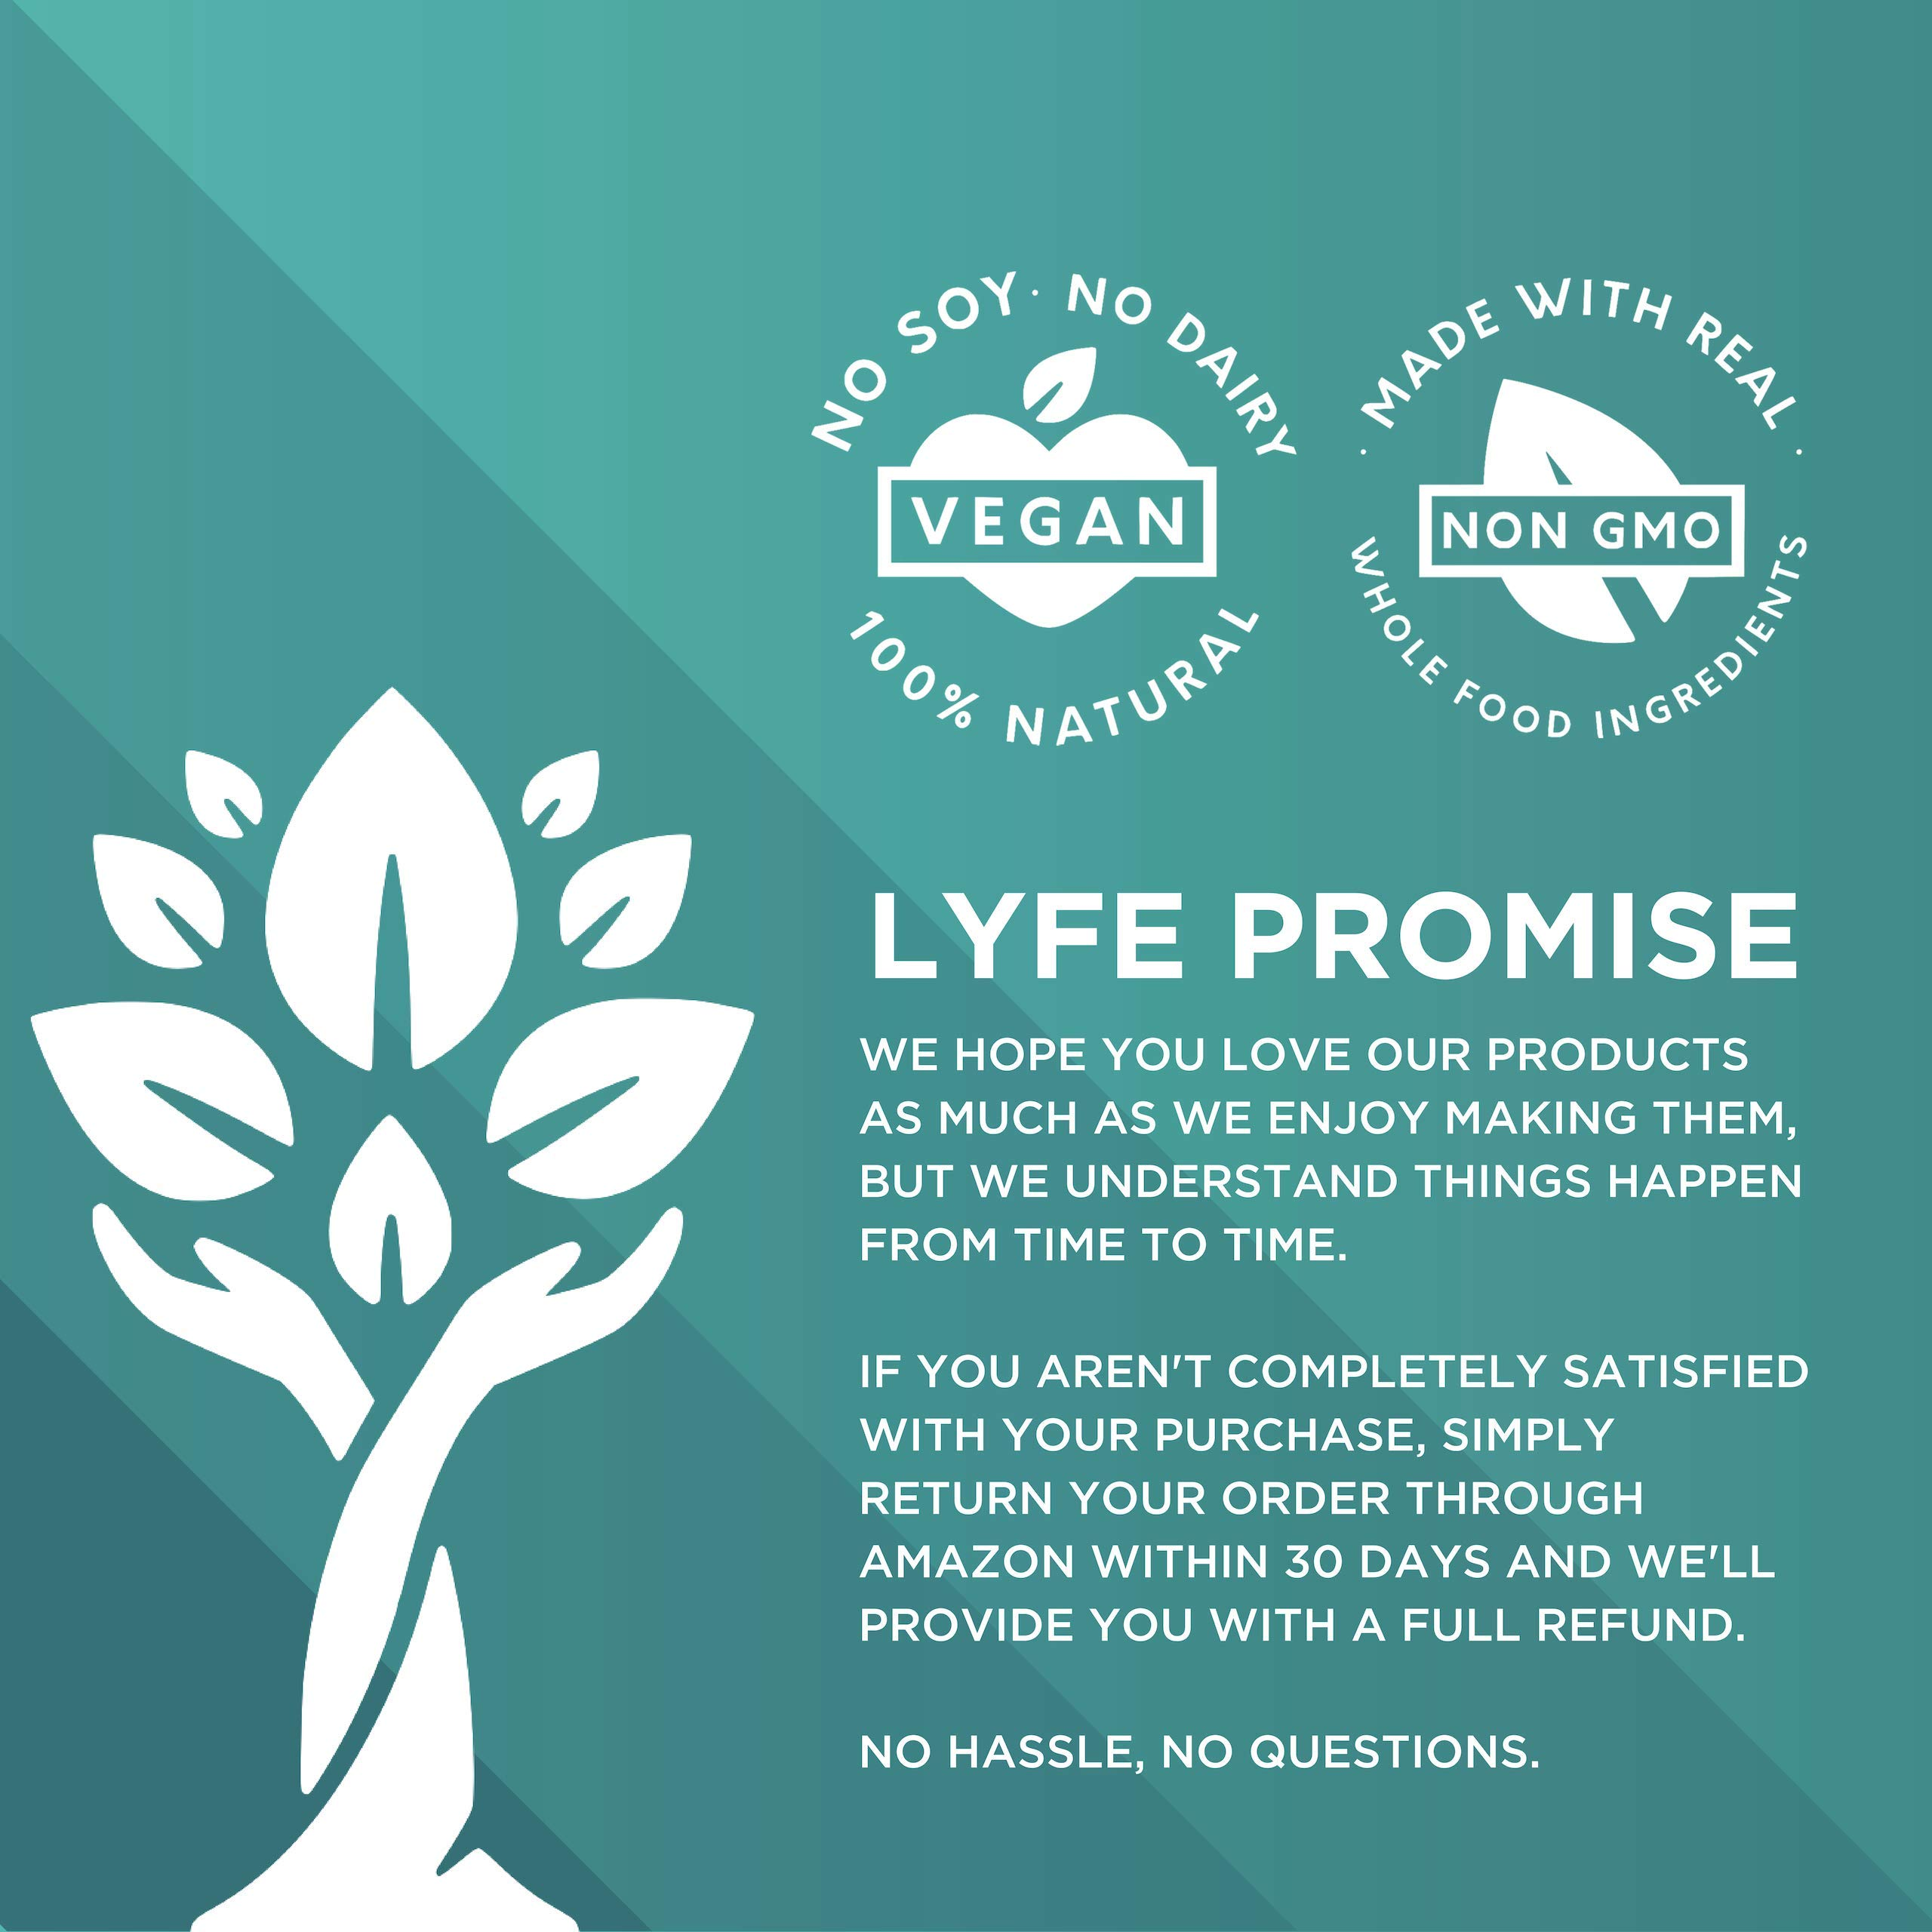 LYFE FUEL Transformation Bundle - Meal Replacement Shakes for Optimal Nutrition - Support a Whole Food Plant-Based Diet & Weight Loss - Vegan, Keto, Low Carb (2 Bags - Chocolate + Vanilla, 28 Meals) by LYFE Fuel